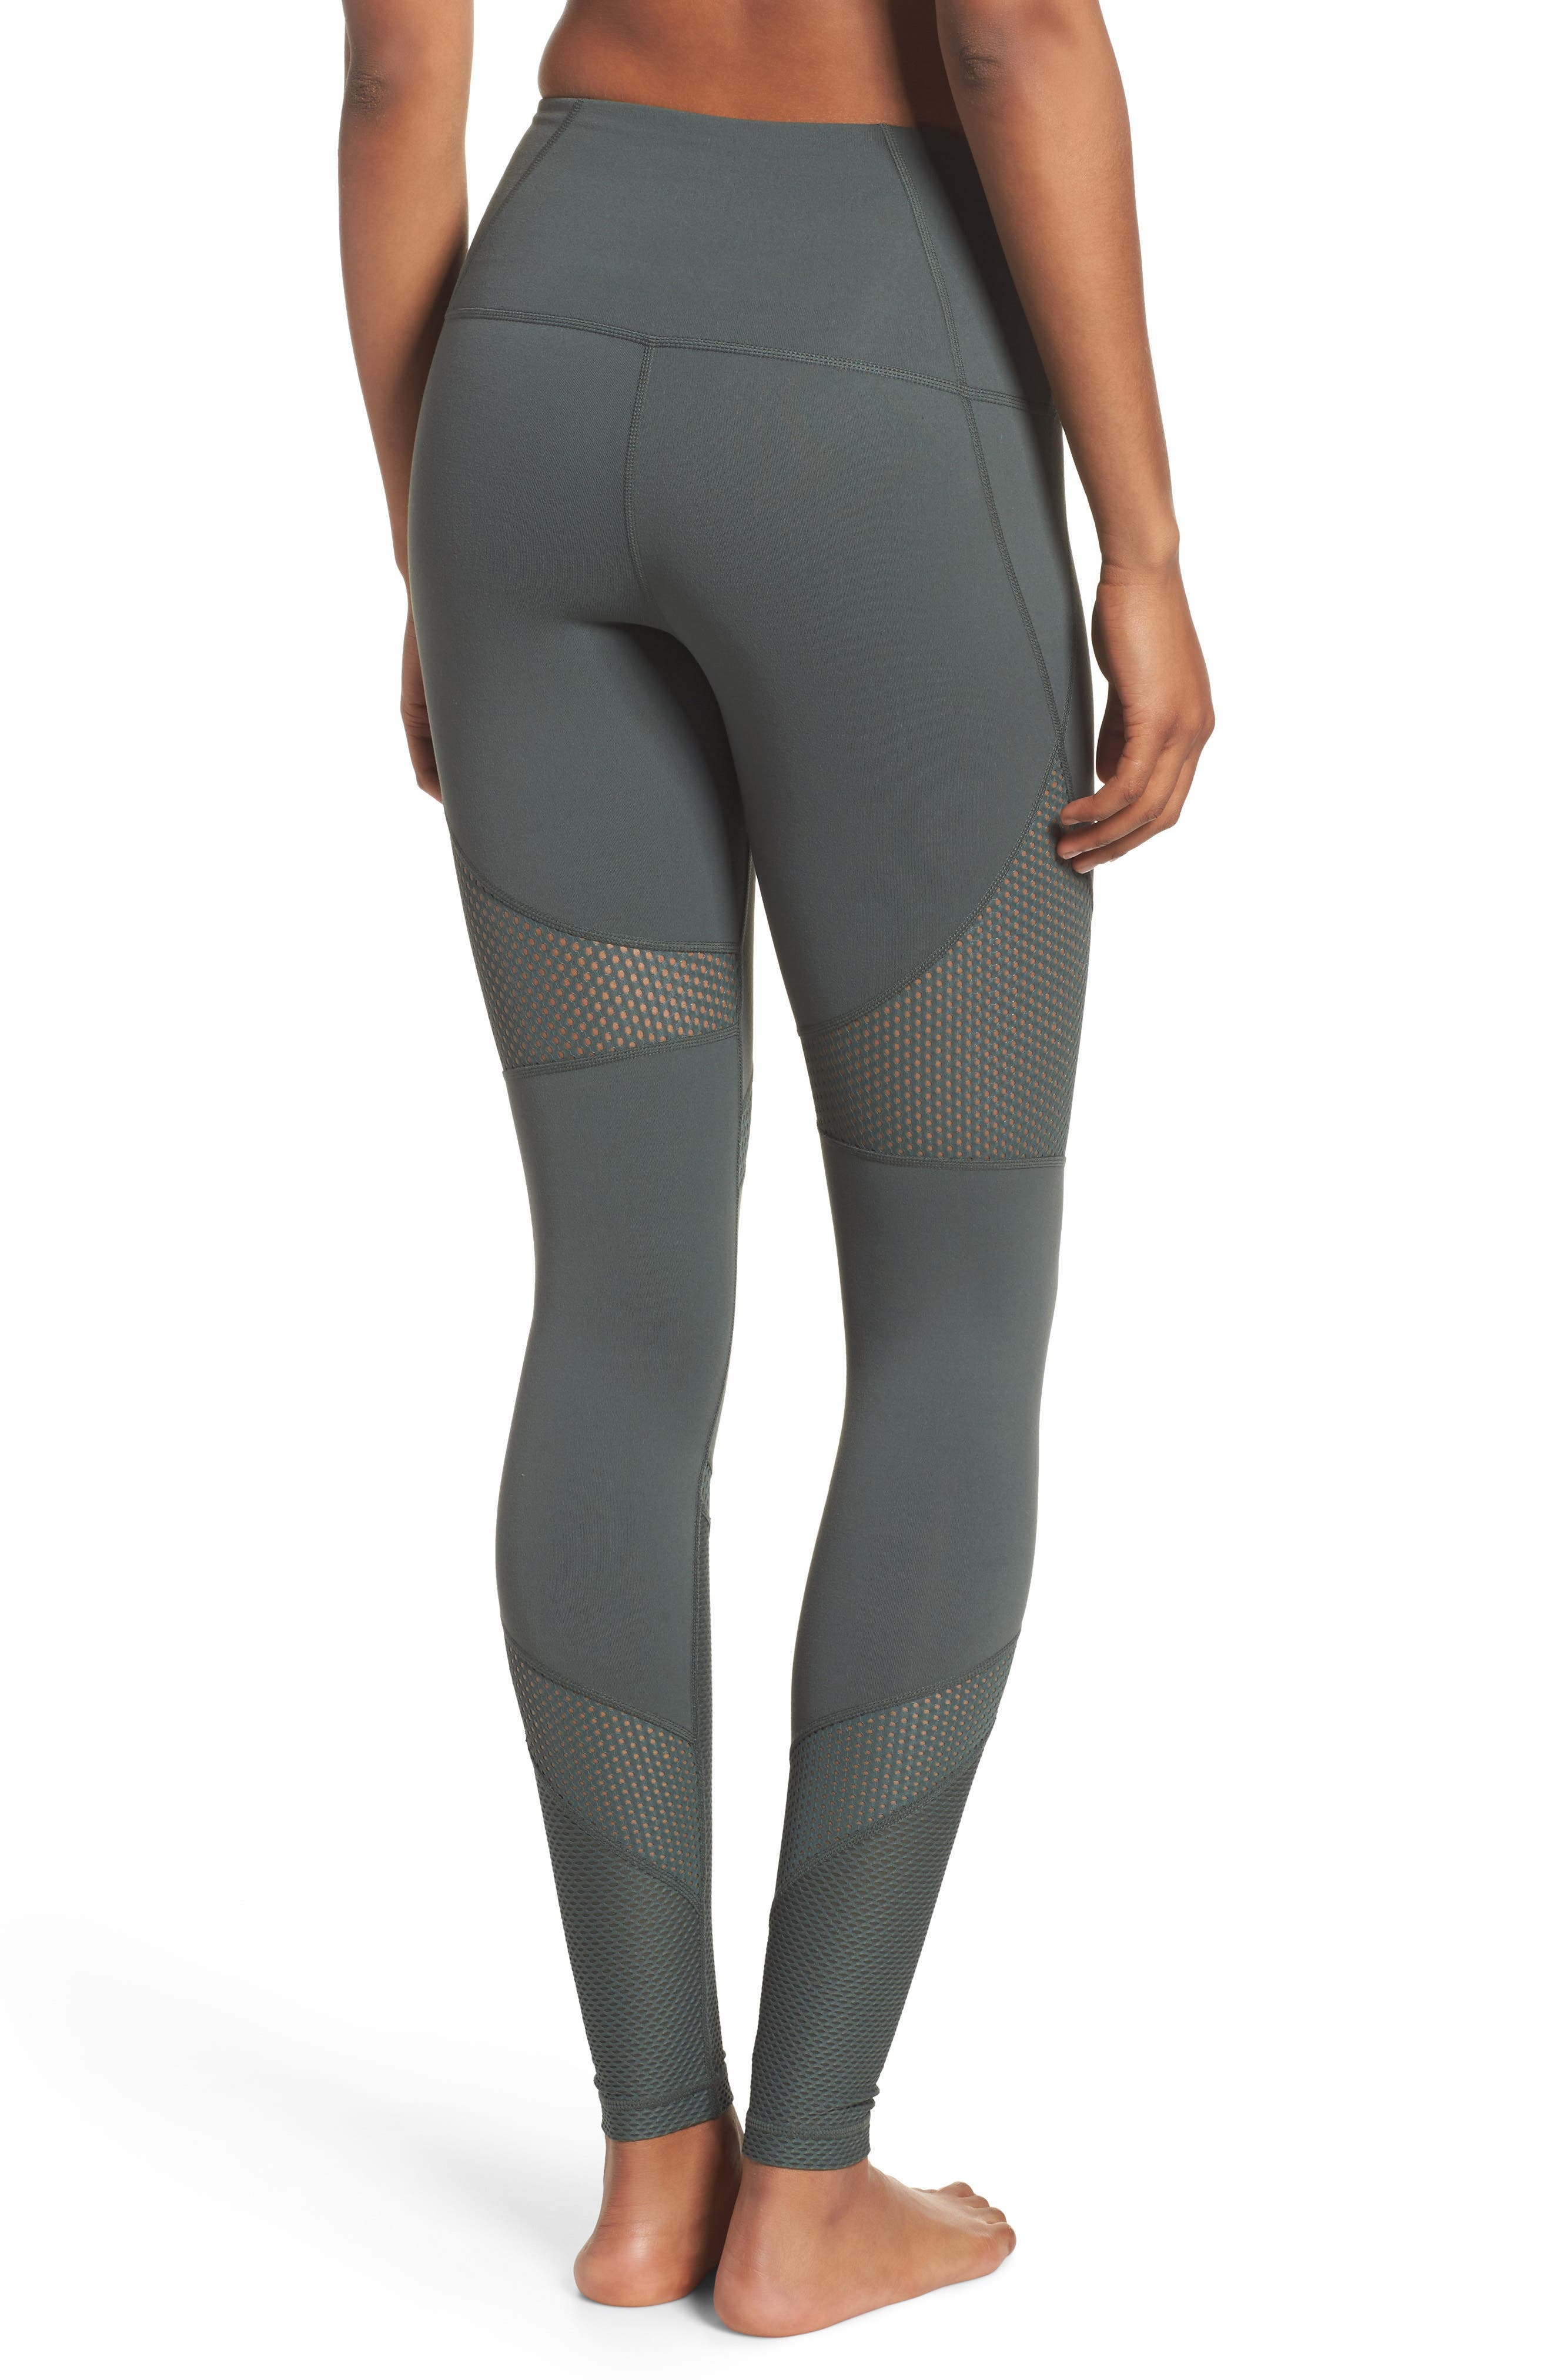 Out of Bounds High Waist Leggings,                             Alternate thumbnail 2, color,                             Grey Urban